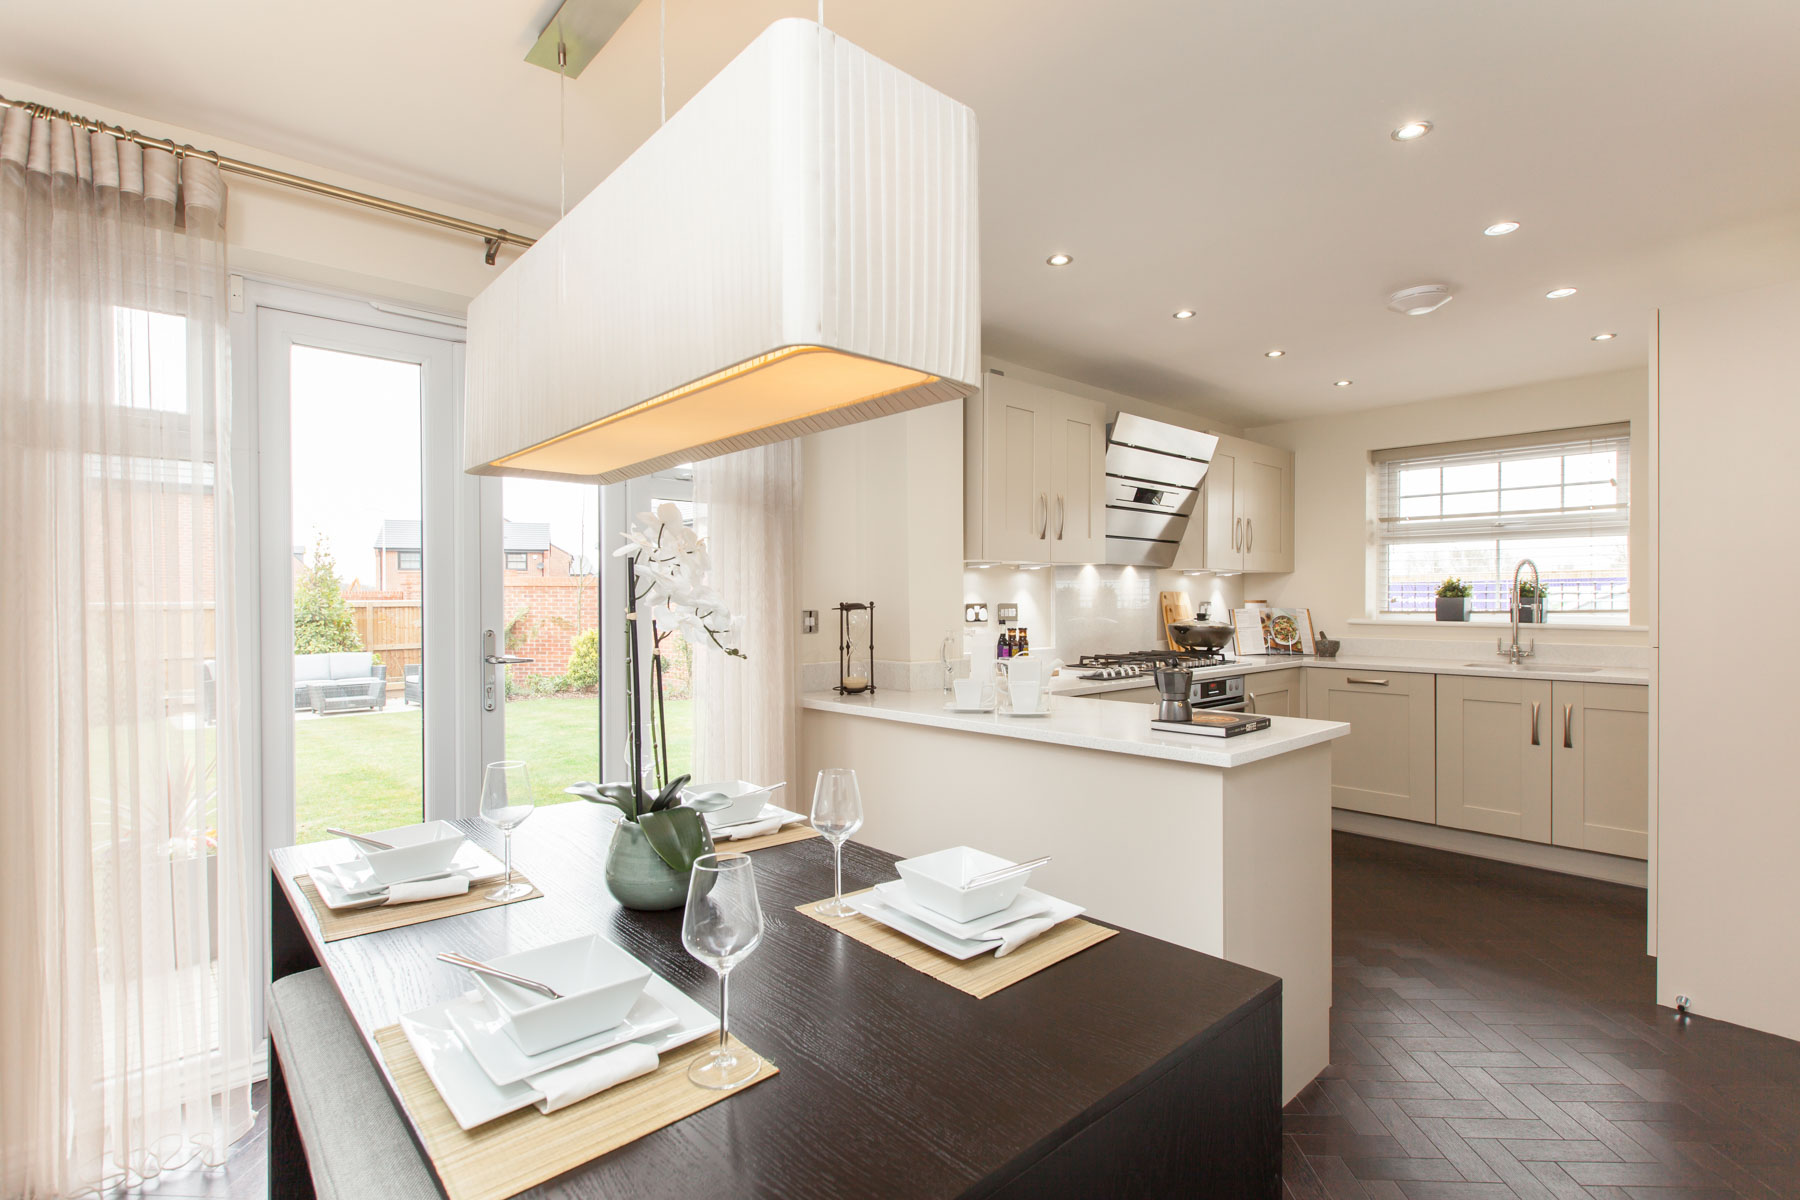 TW Exeter - Cranbrook - Lindale example kitchen 2